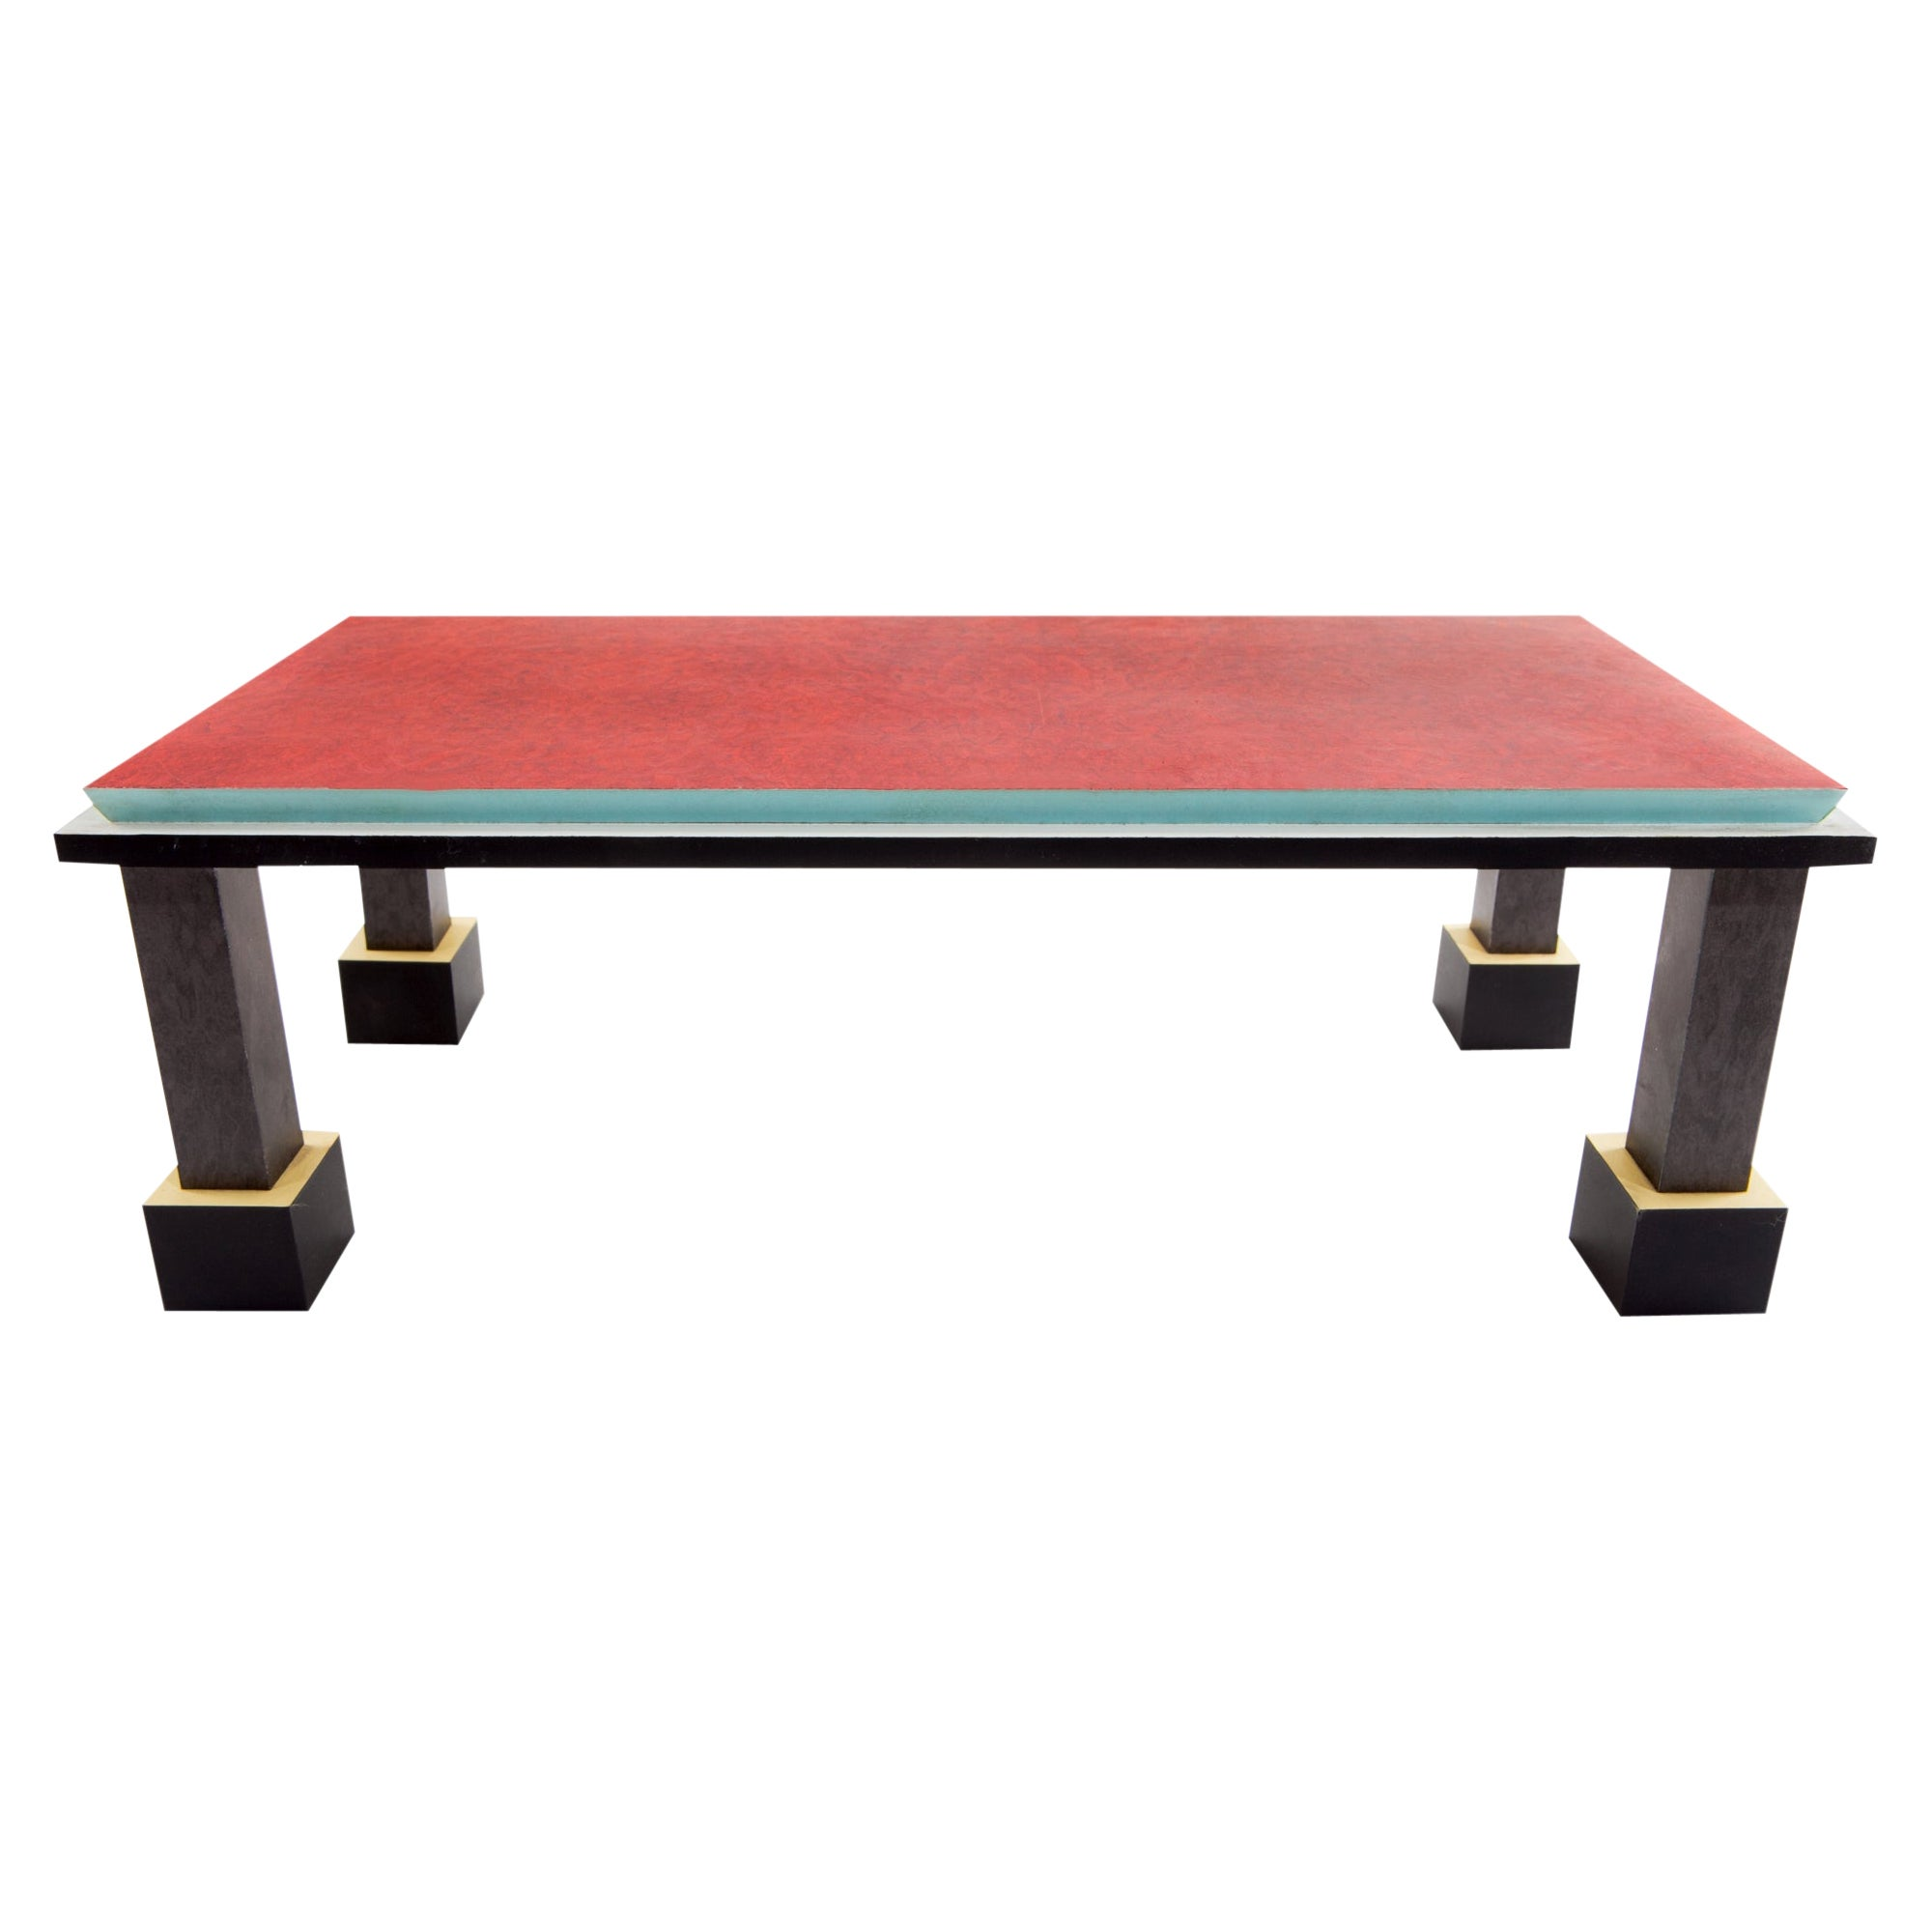 Palm Springs Briar Dining Table, by Ettore Sottsass from Memphis Milano